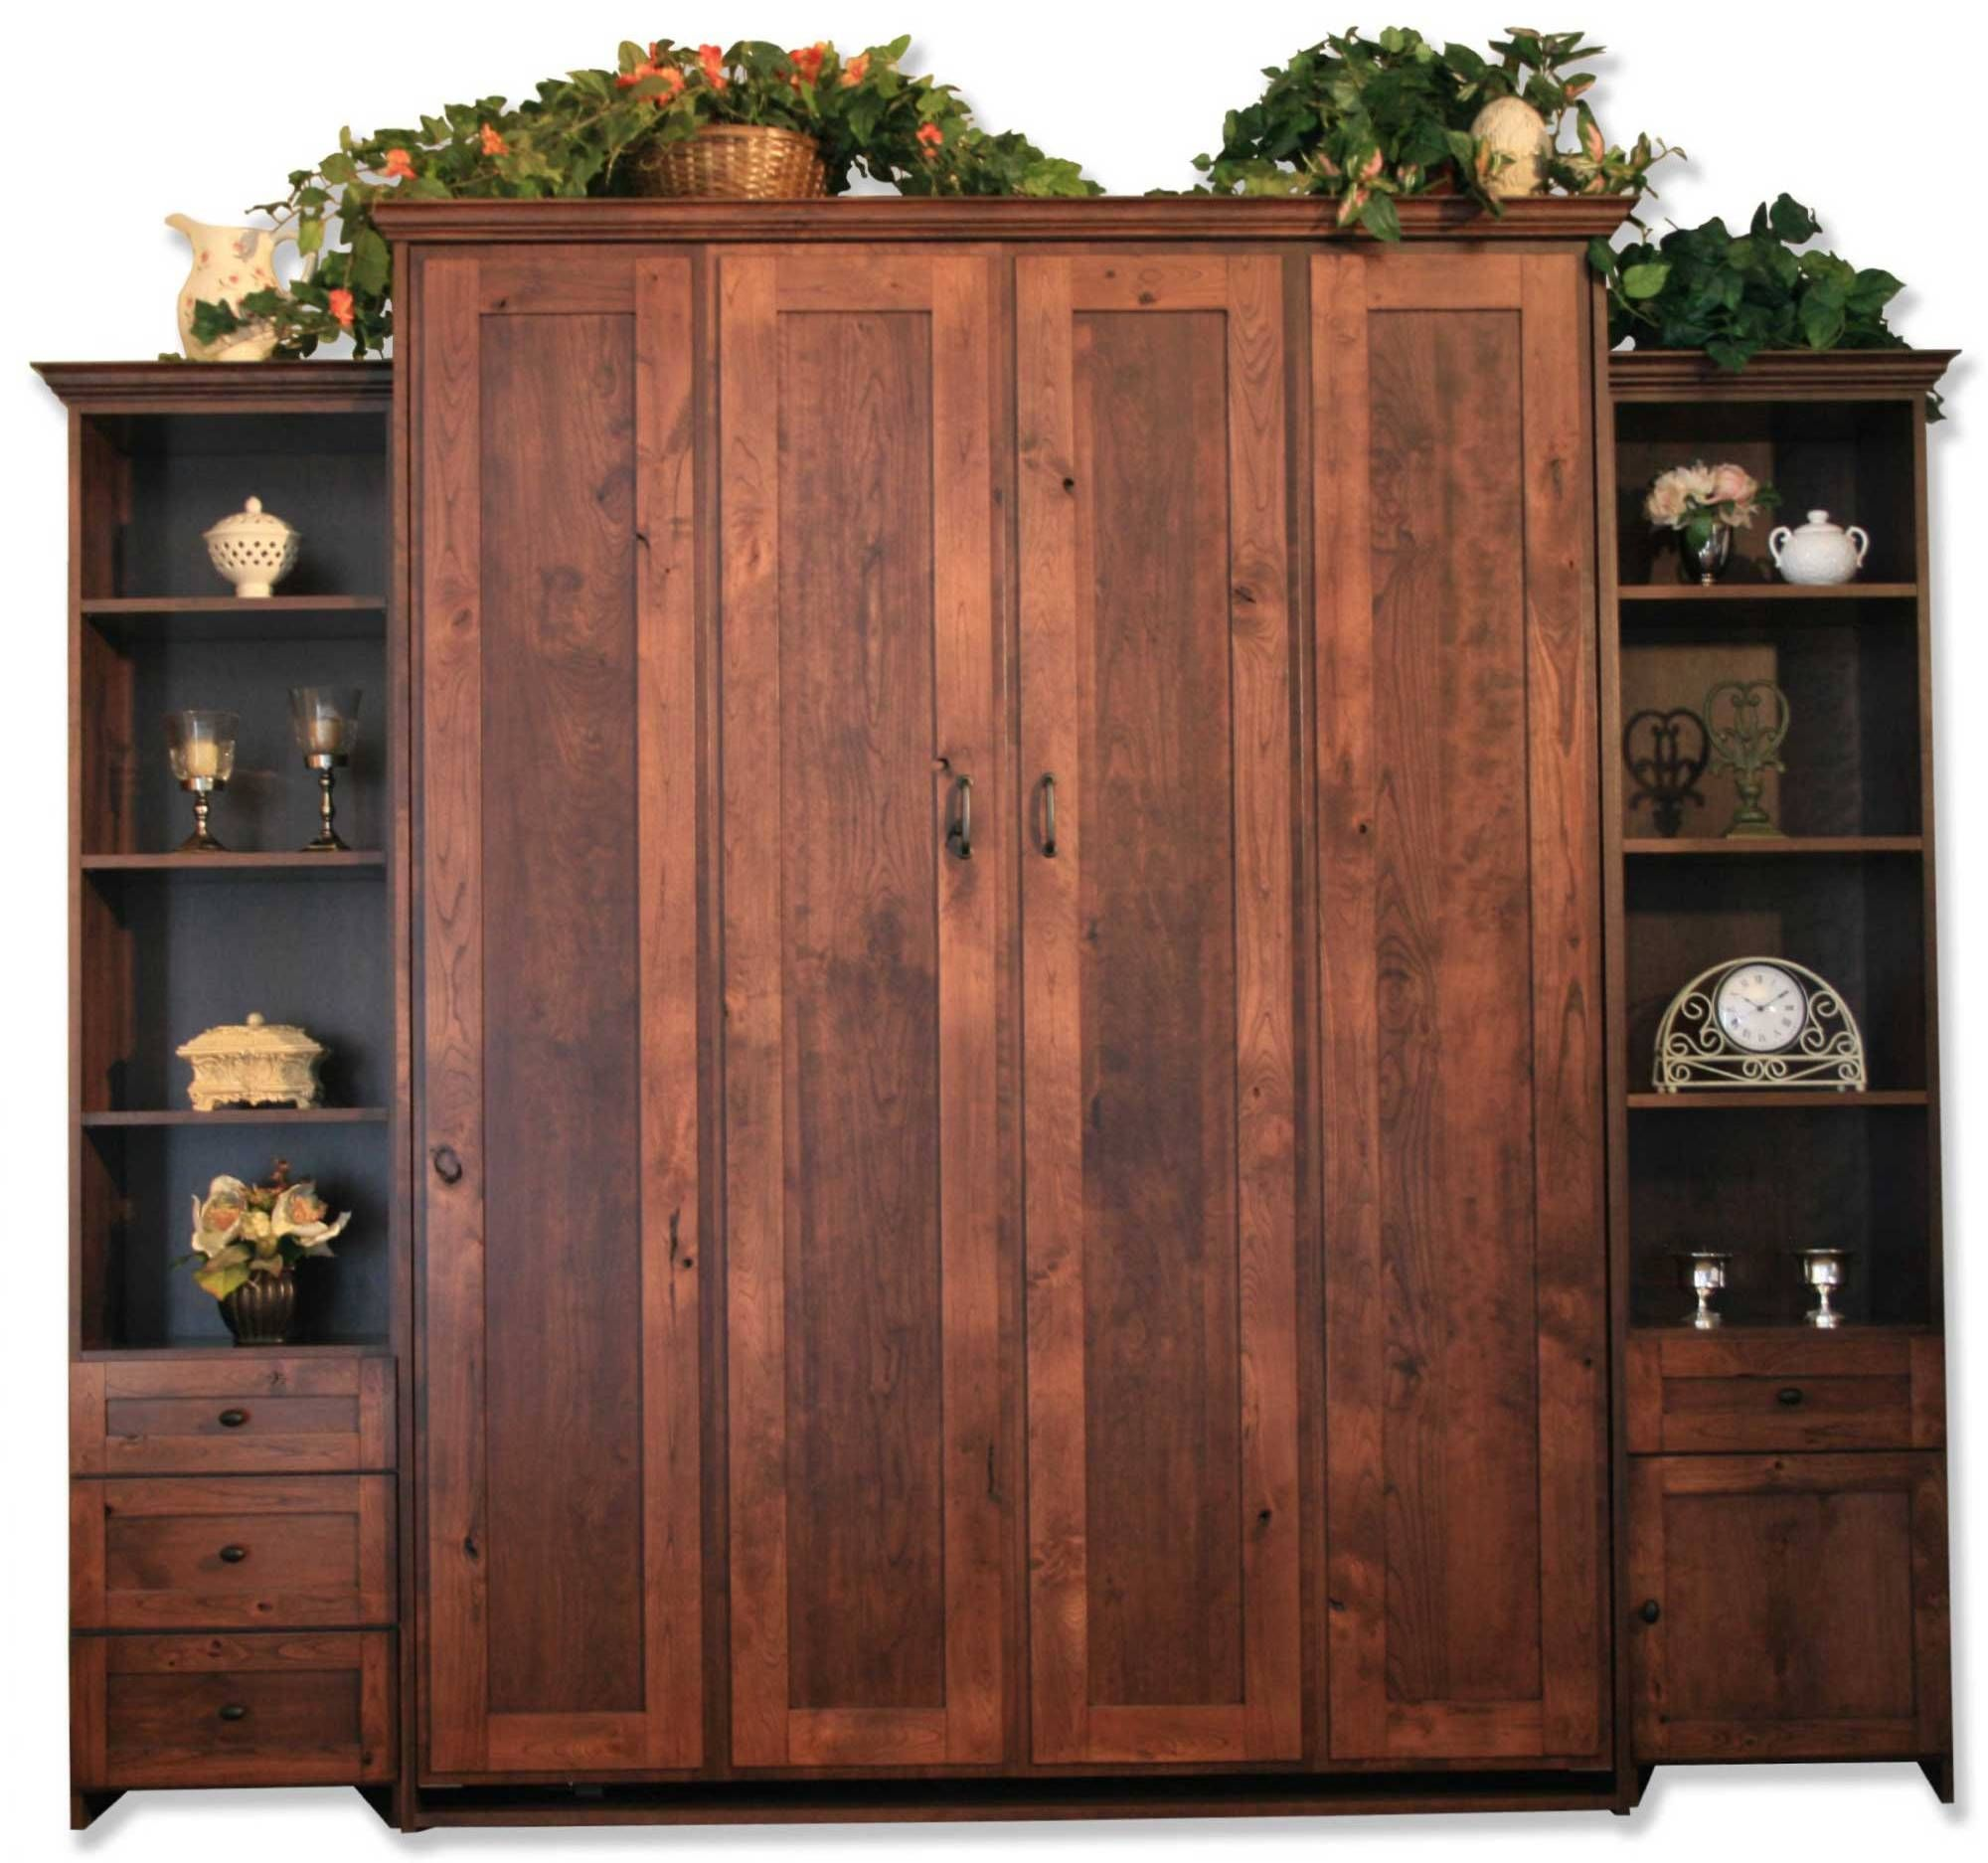 Amish Kitchen Cabinets Knotty Alder: Wall Bed............I Have Always Wanted A Murphy Bed!